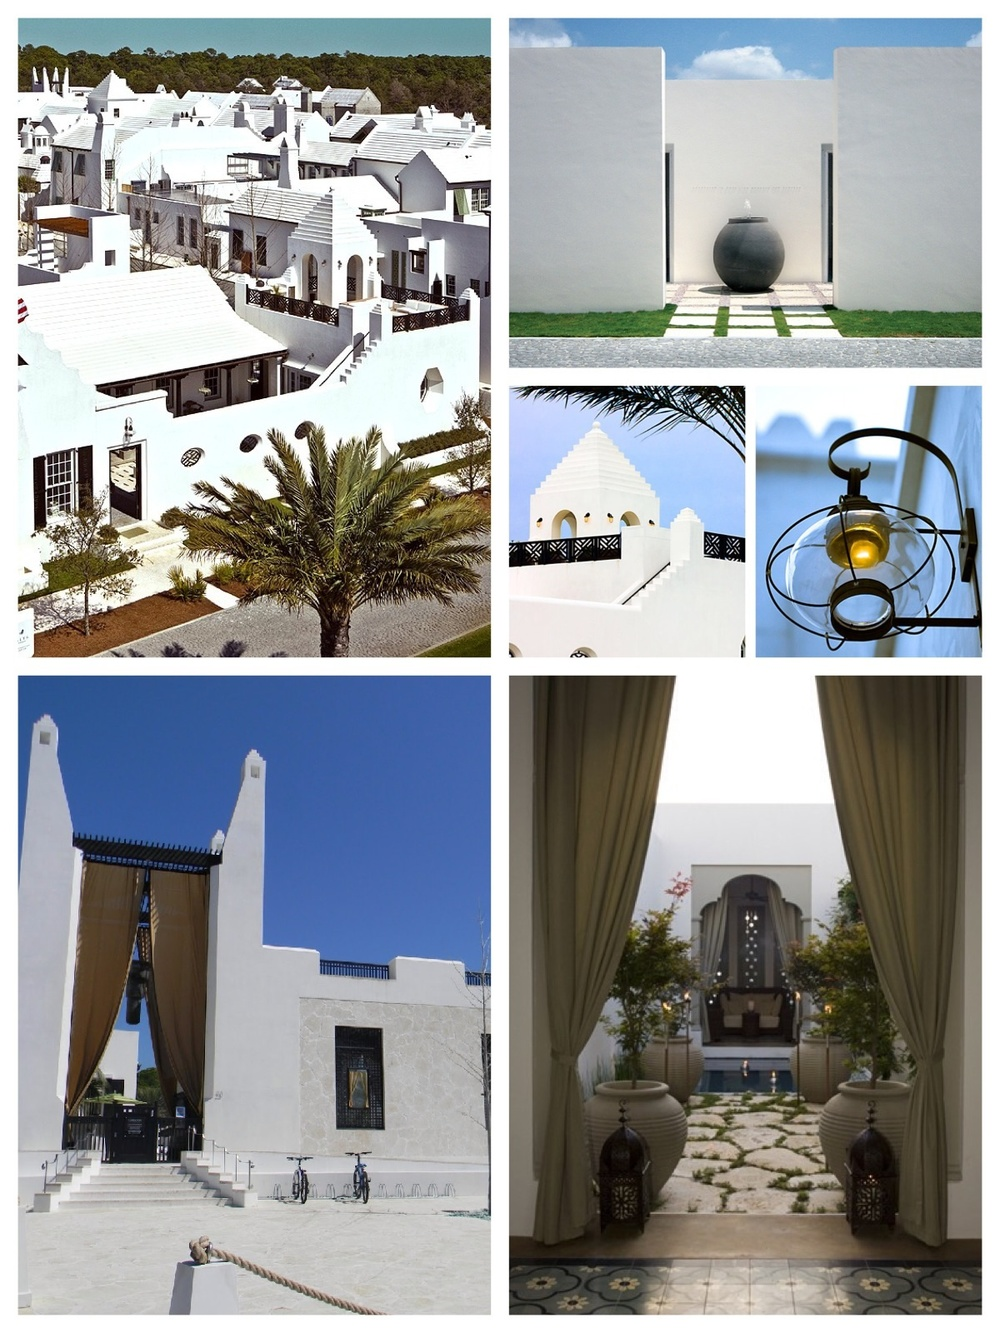 The stunning architecture of Alys Beach. So inspiring.